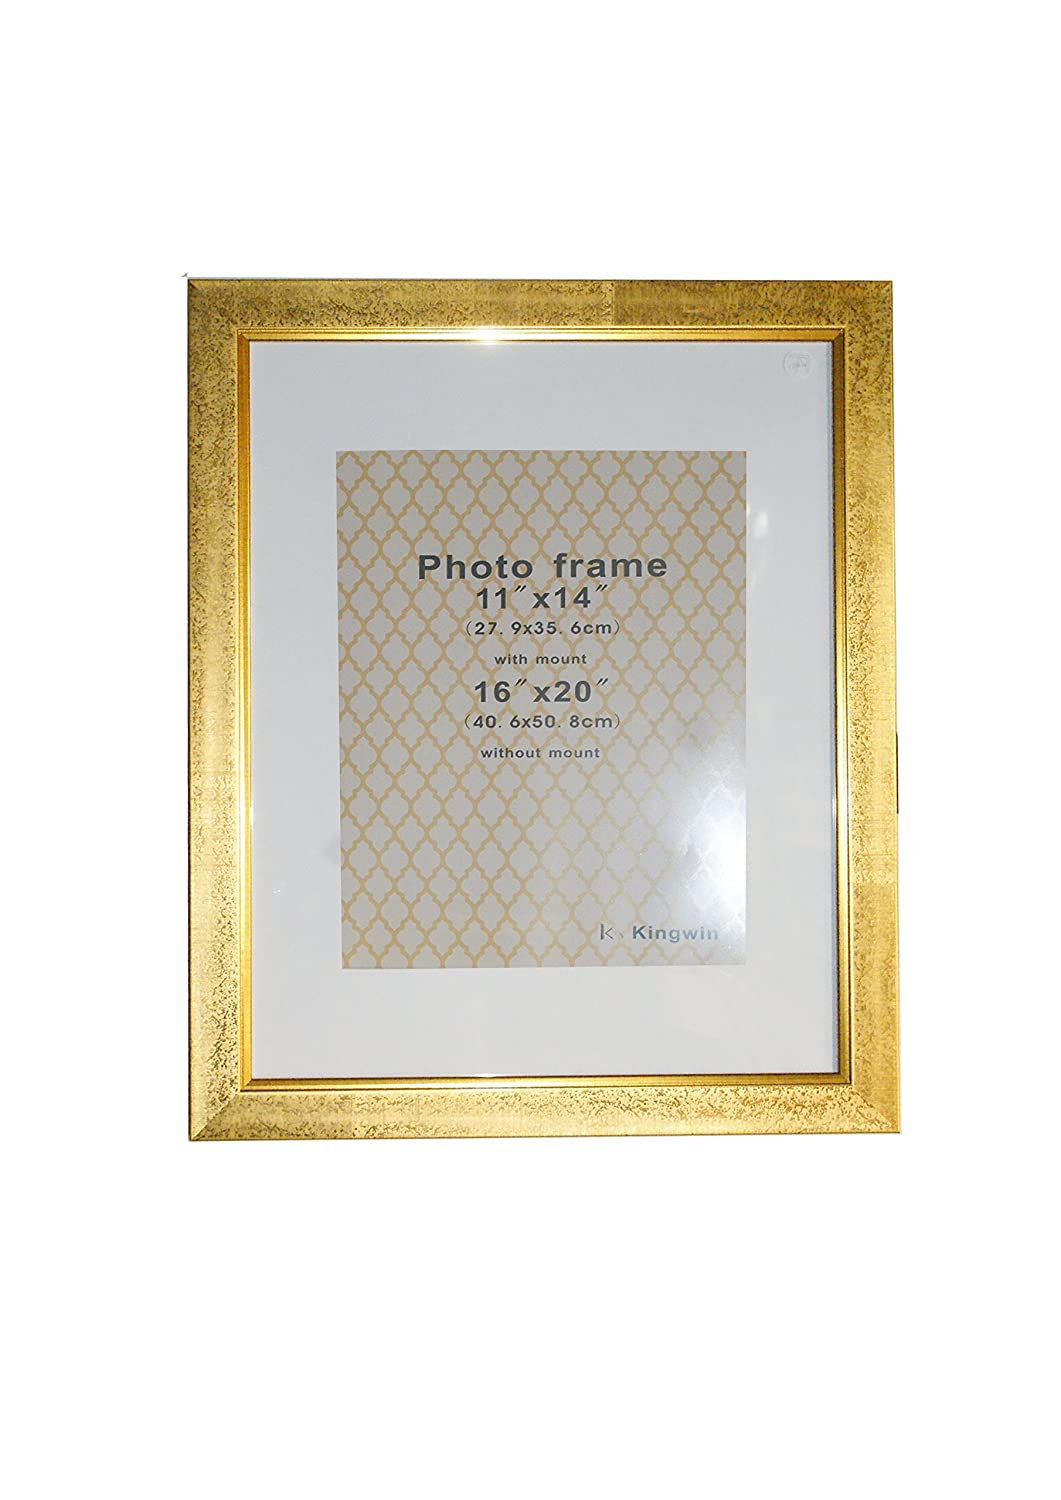 Amazon kingwin picture frame pf41007 gold with white mat 16 amazon kingwin picture frame pf41007 gold with white mat 16x20 gold jeuxipadfo Gallery